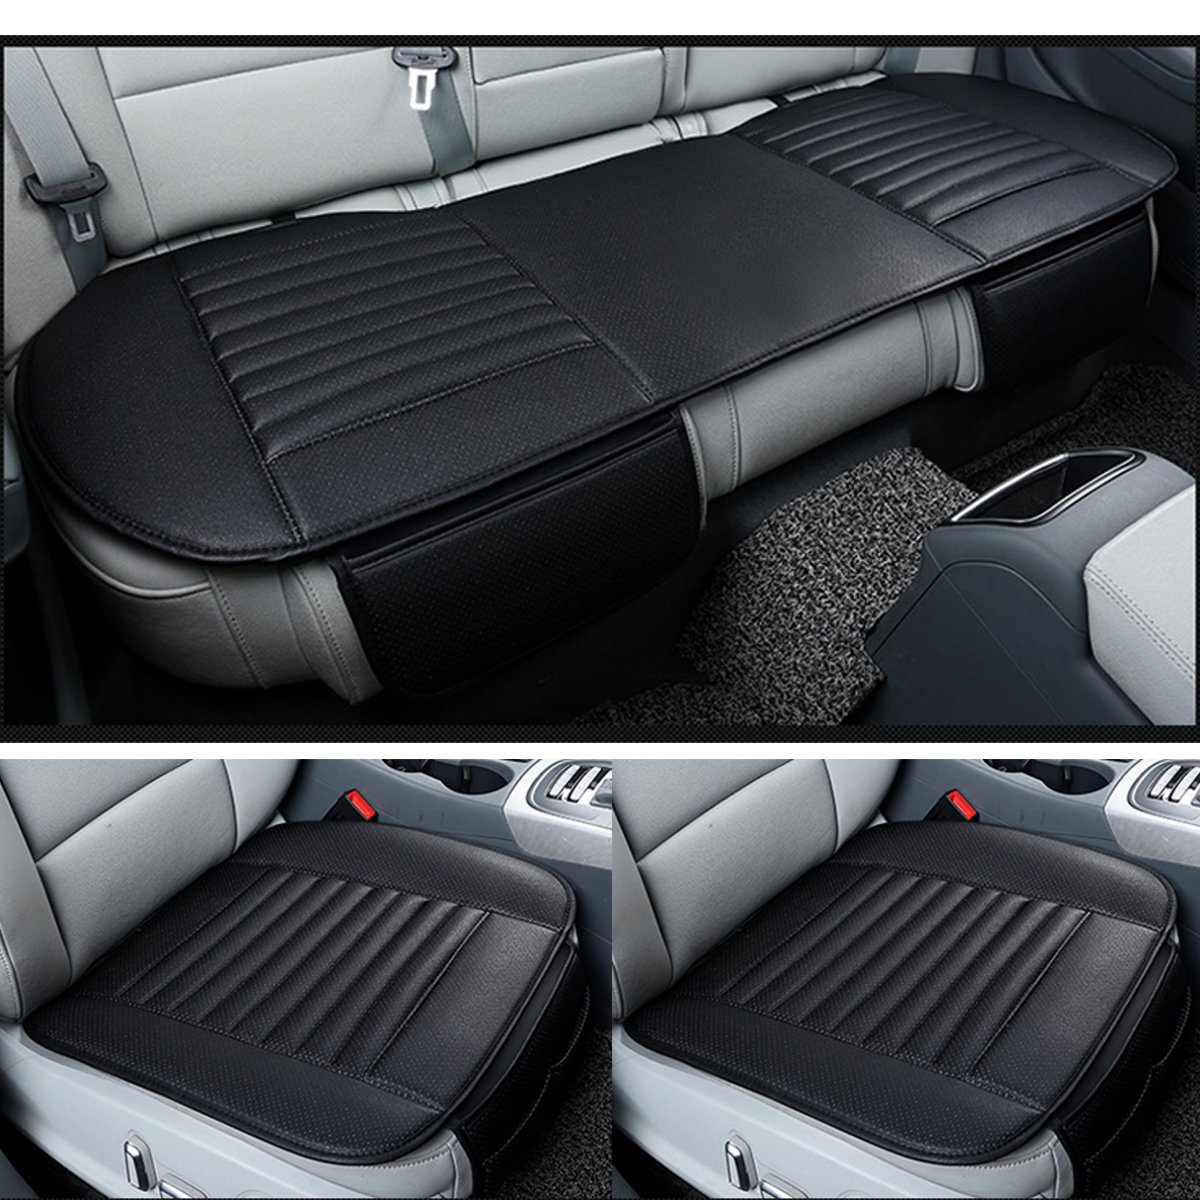 1 Set For 5 Seat Car Seat Cover Winter Warm Front Back Rear Seat Cushion Pu Leather Breathable Universal Car Seat Protector Mat